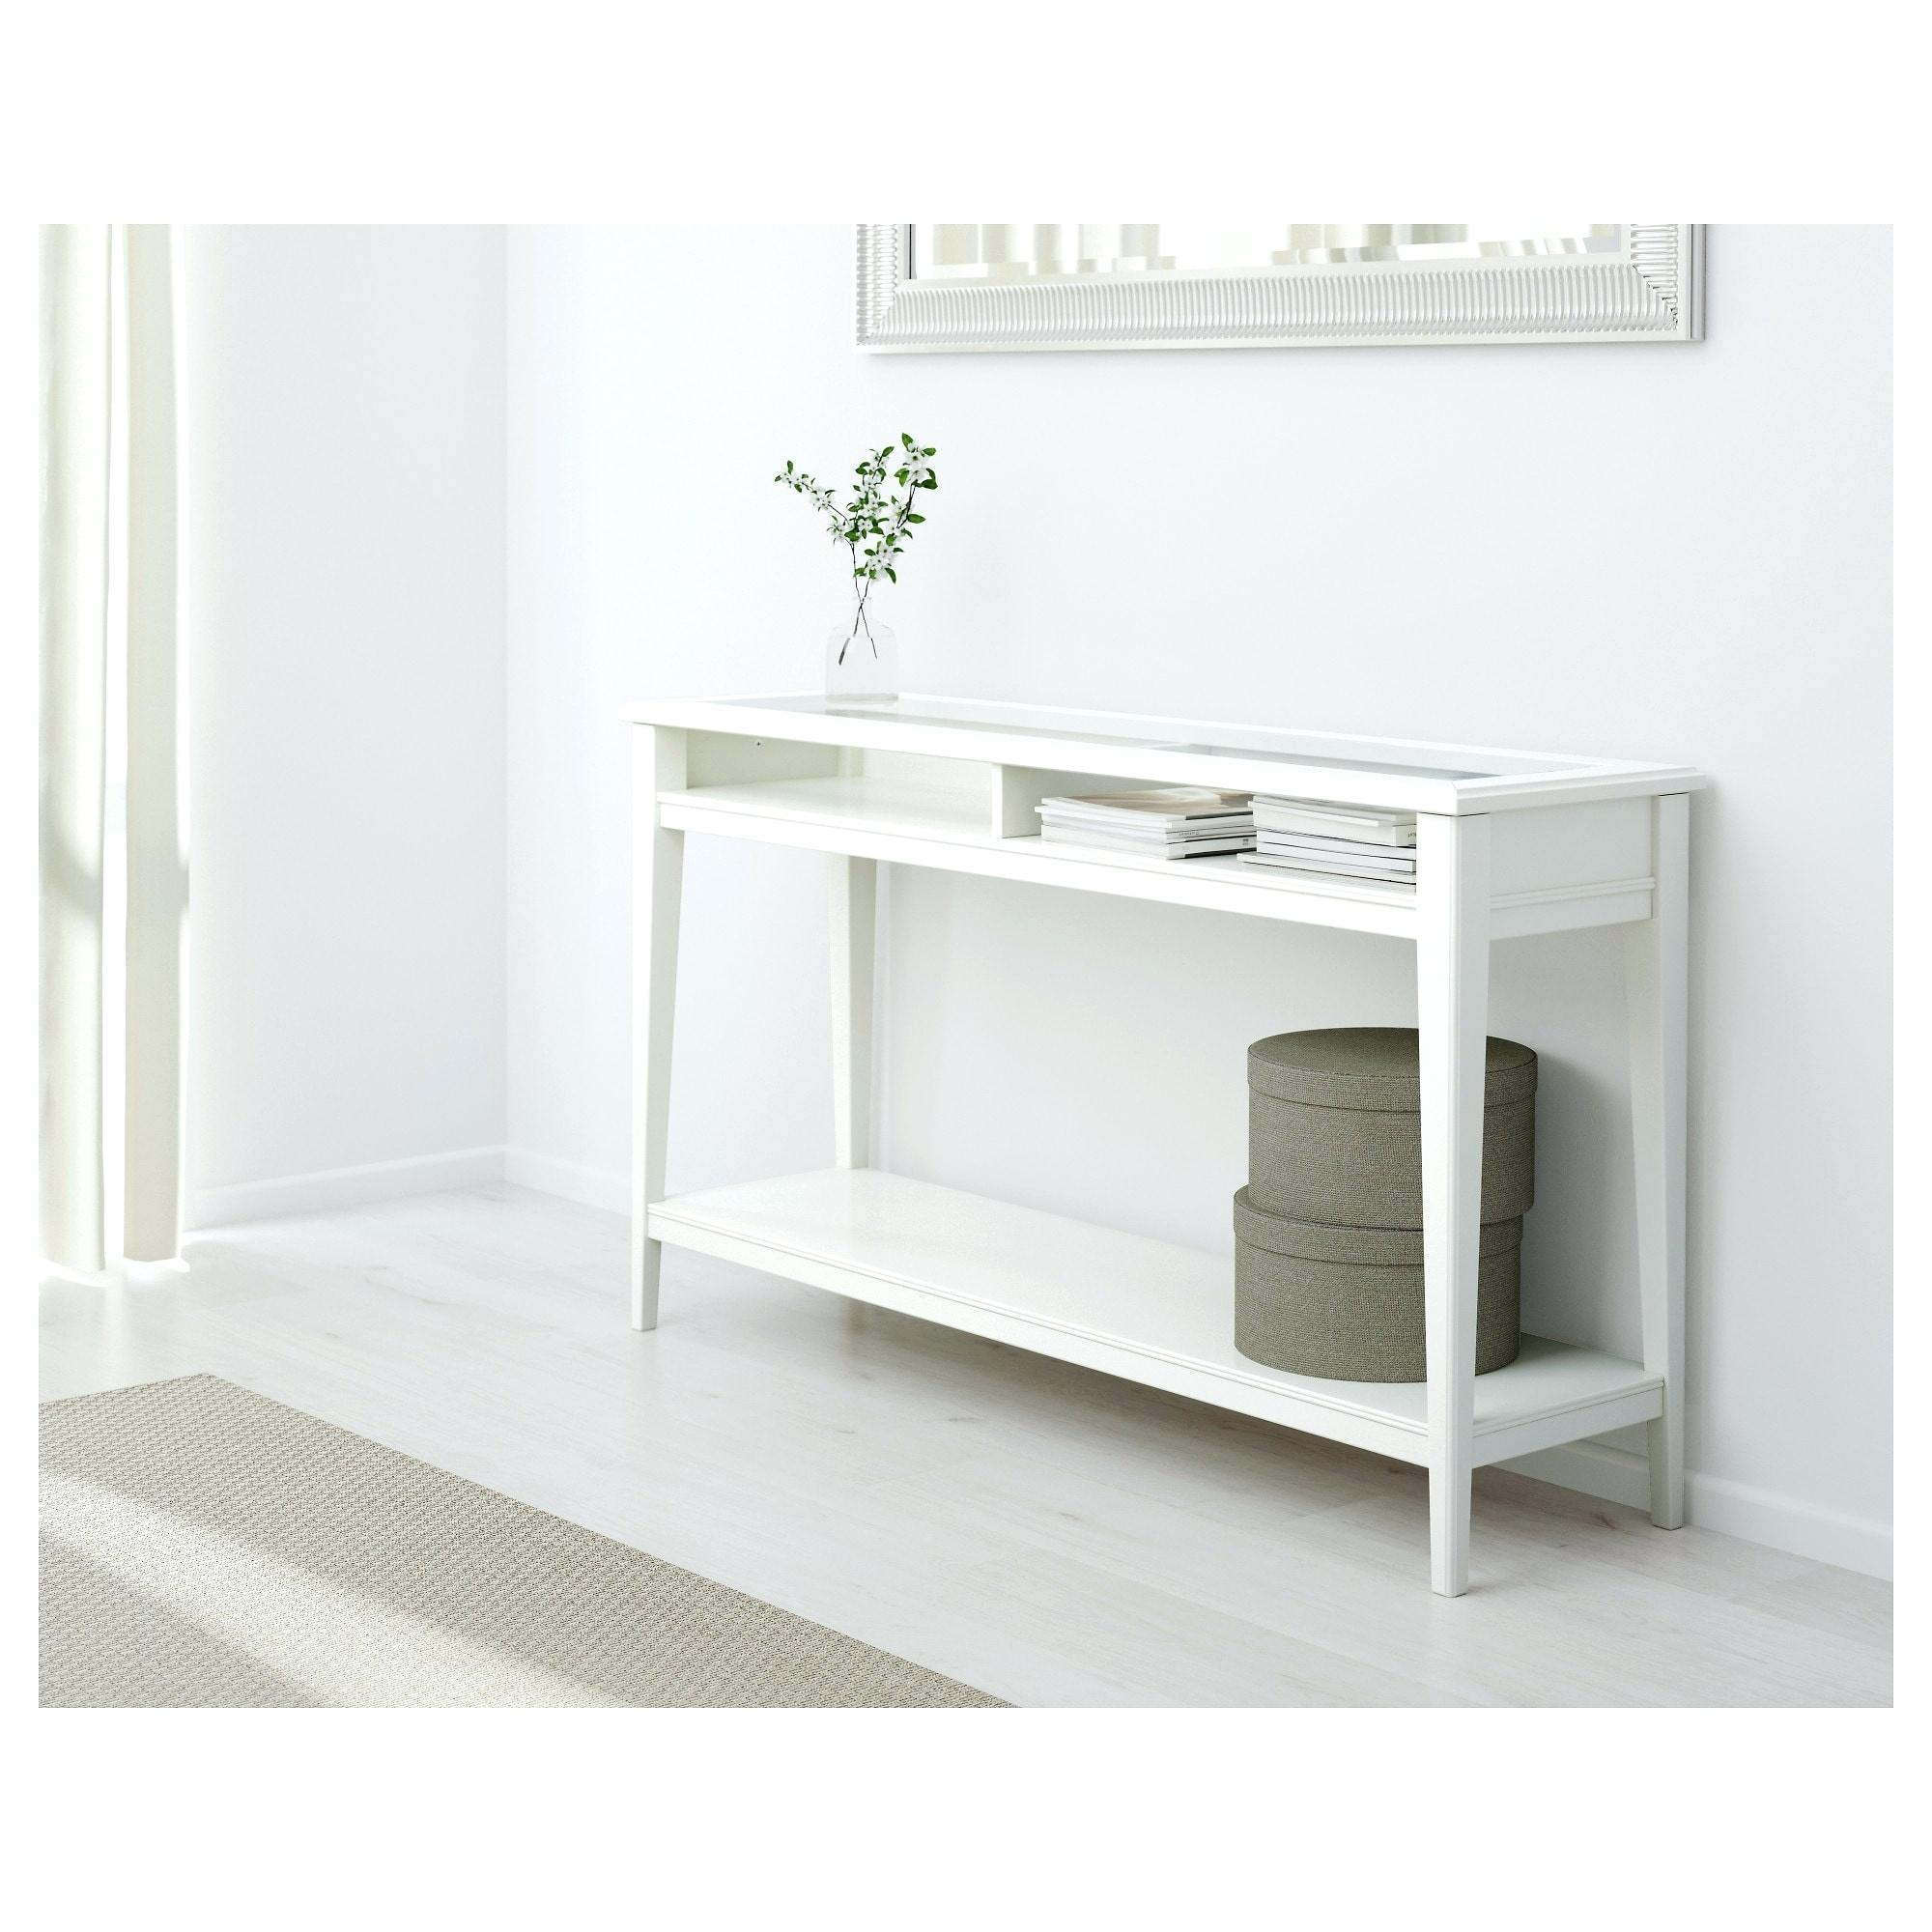 60 Console Table – Aumsocialconference Pertaining To Silviano 60 Inch Console Tables (Gallery 8 of 30)